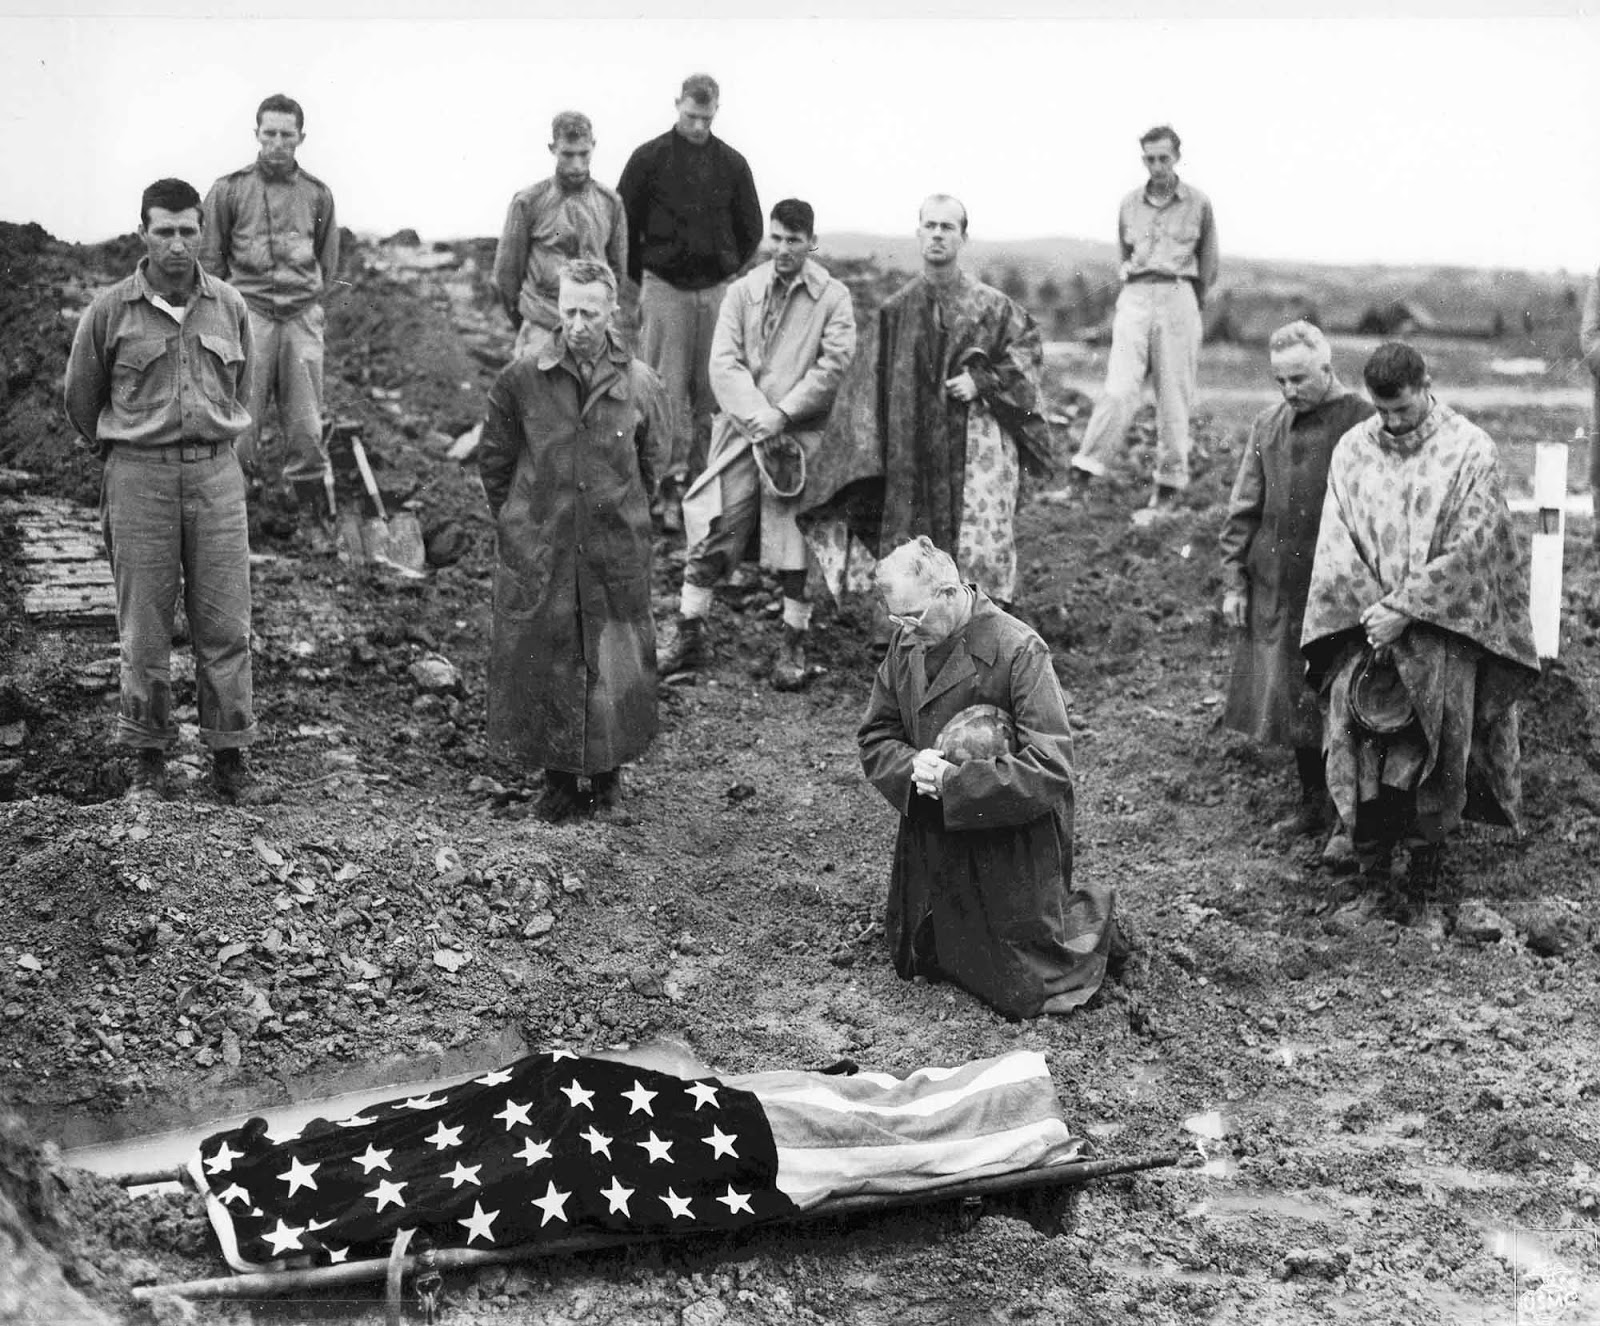 US Marine Colonel Francis Fenton conducting the funeral of his son Private First Class Mike Fenton, near Shuri, Okinawa, May 1945.